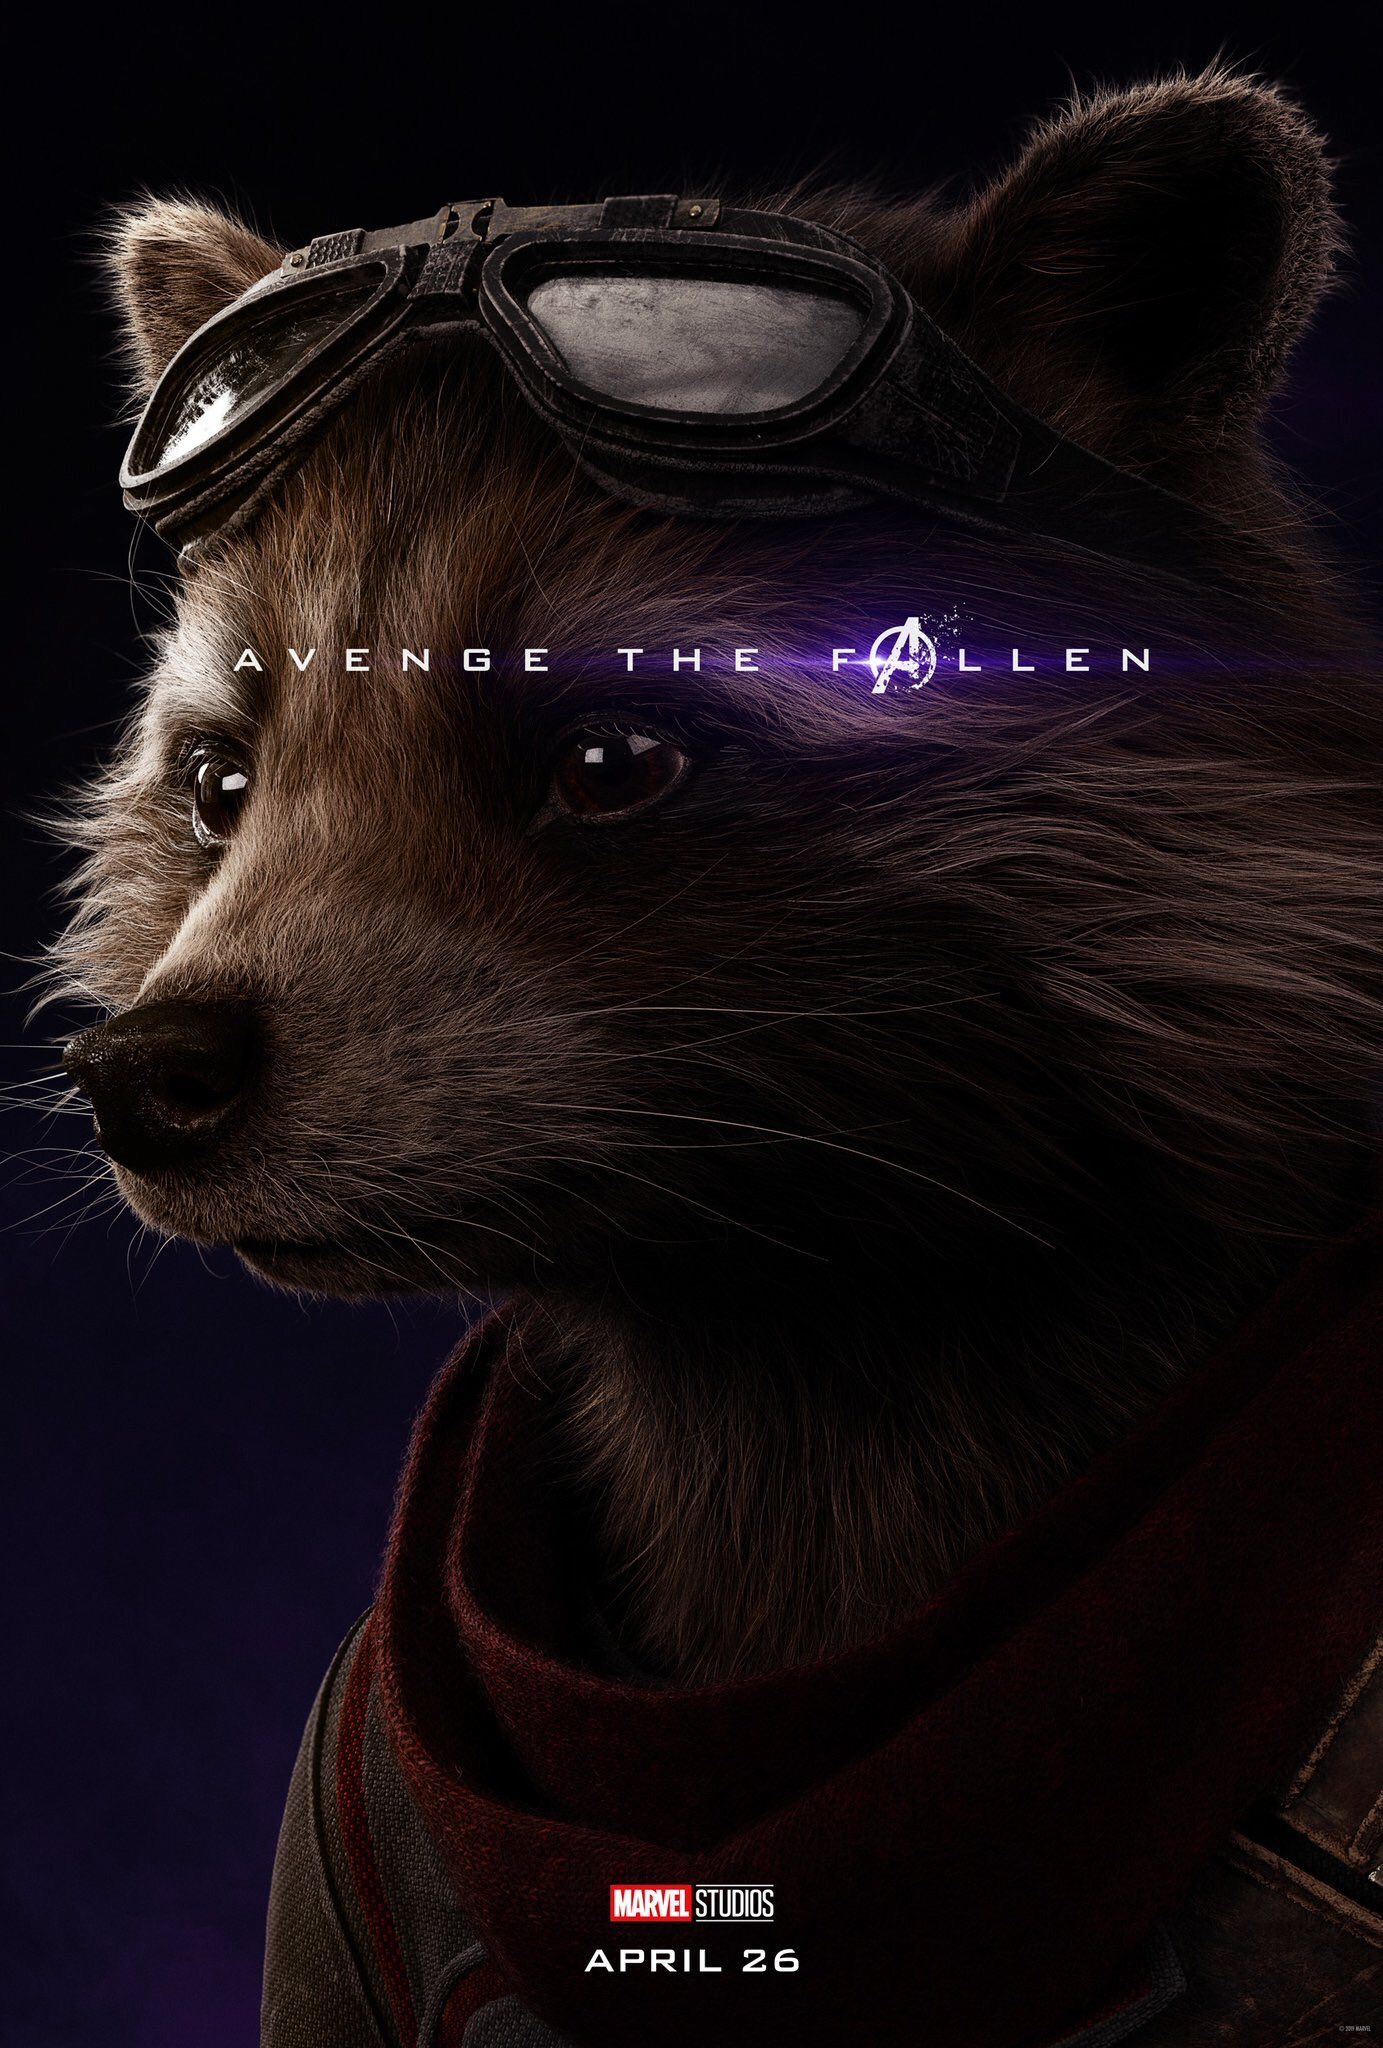 The Avengers: Avengers Endgame Character Posters Confirm The Living And